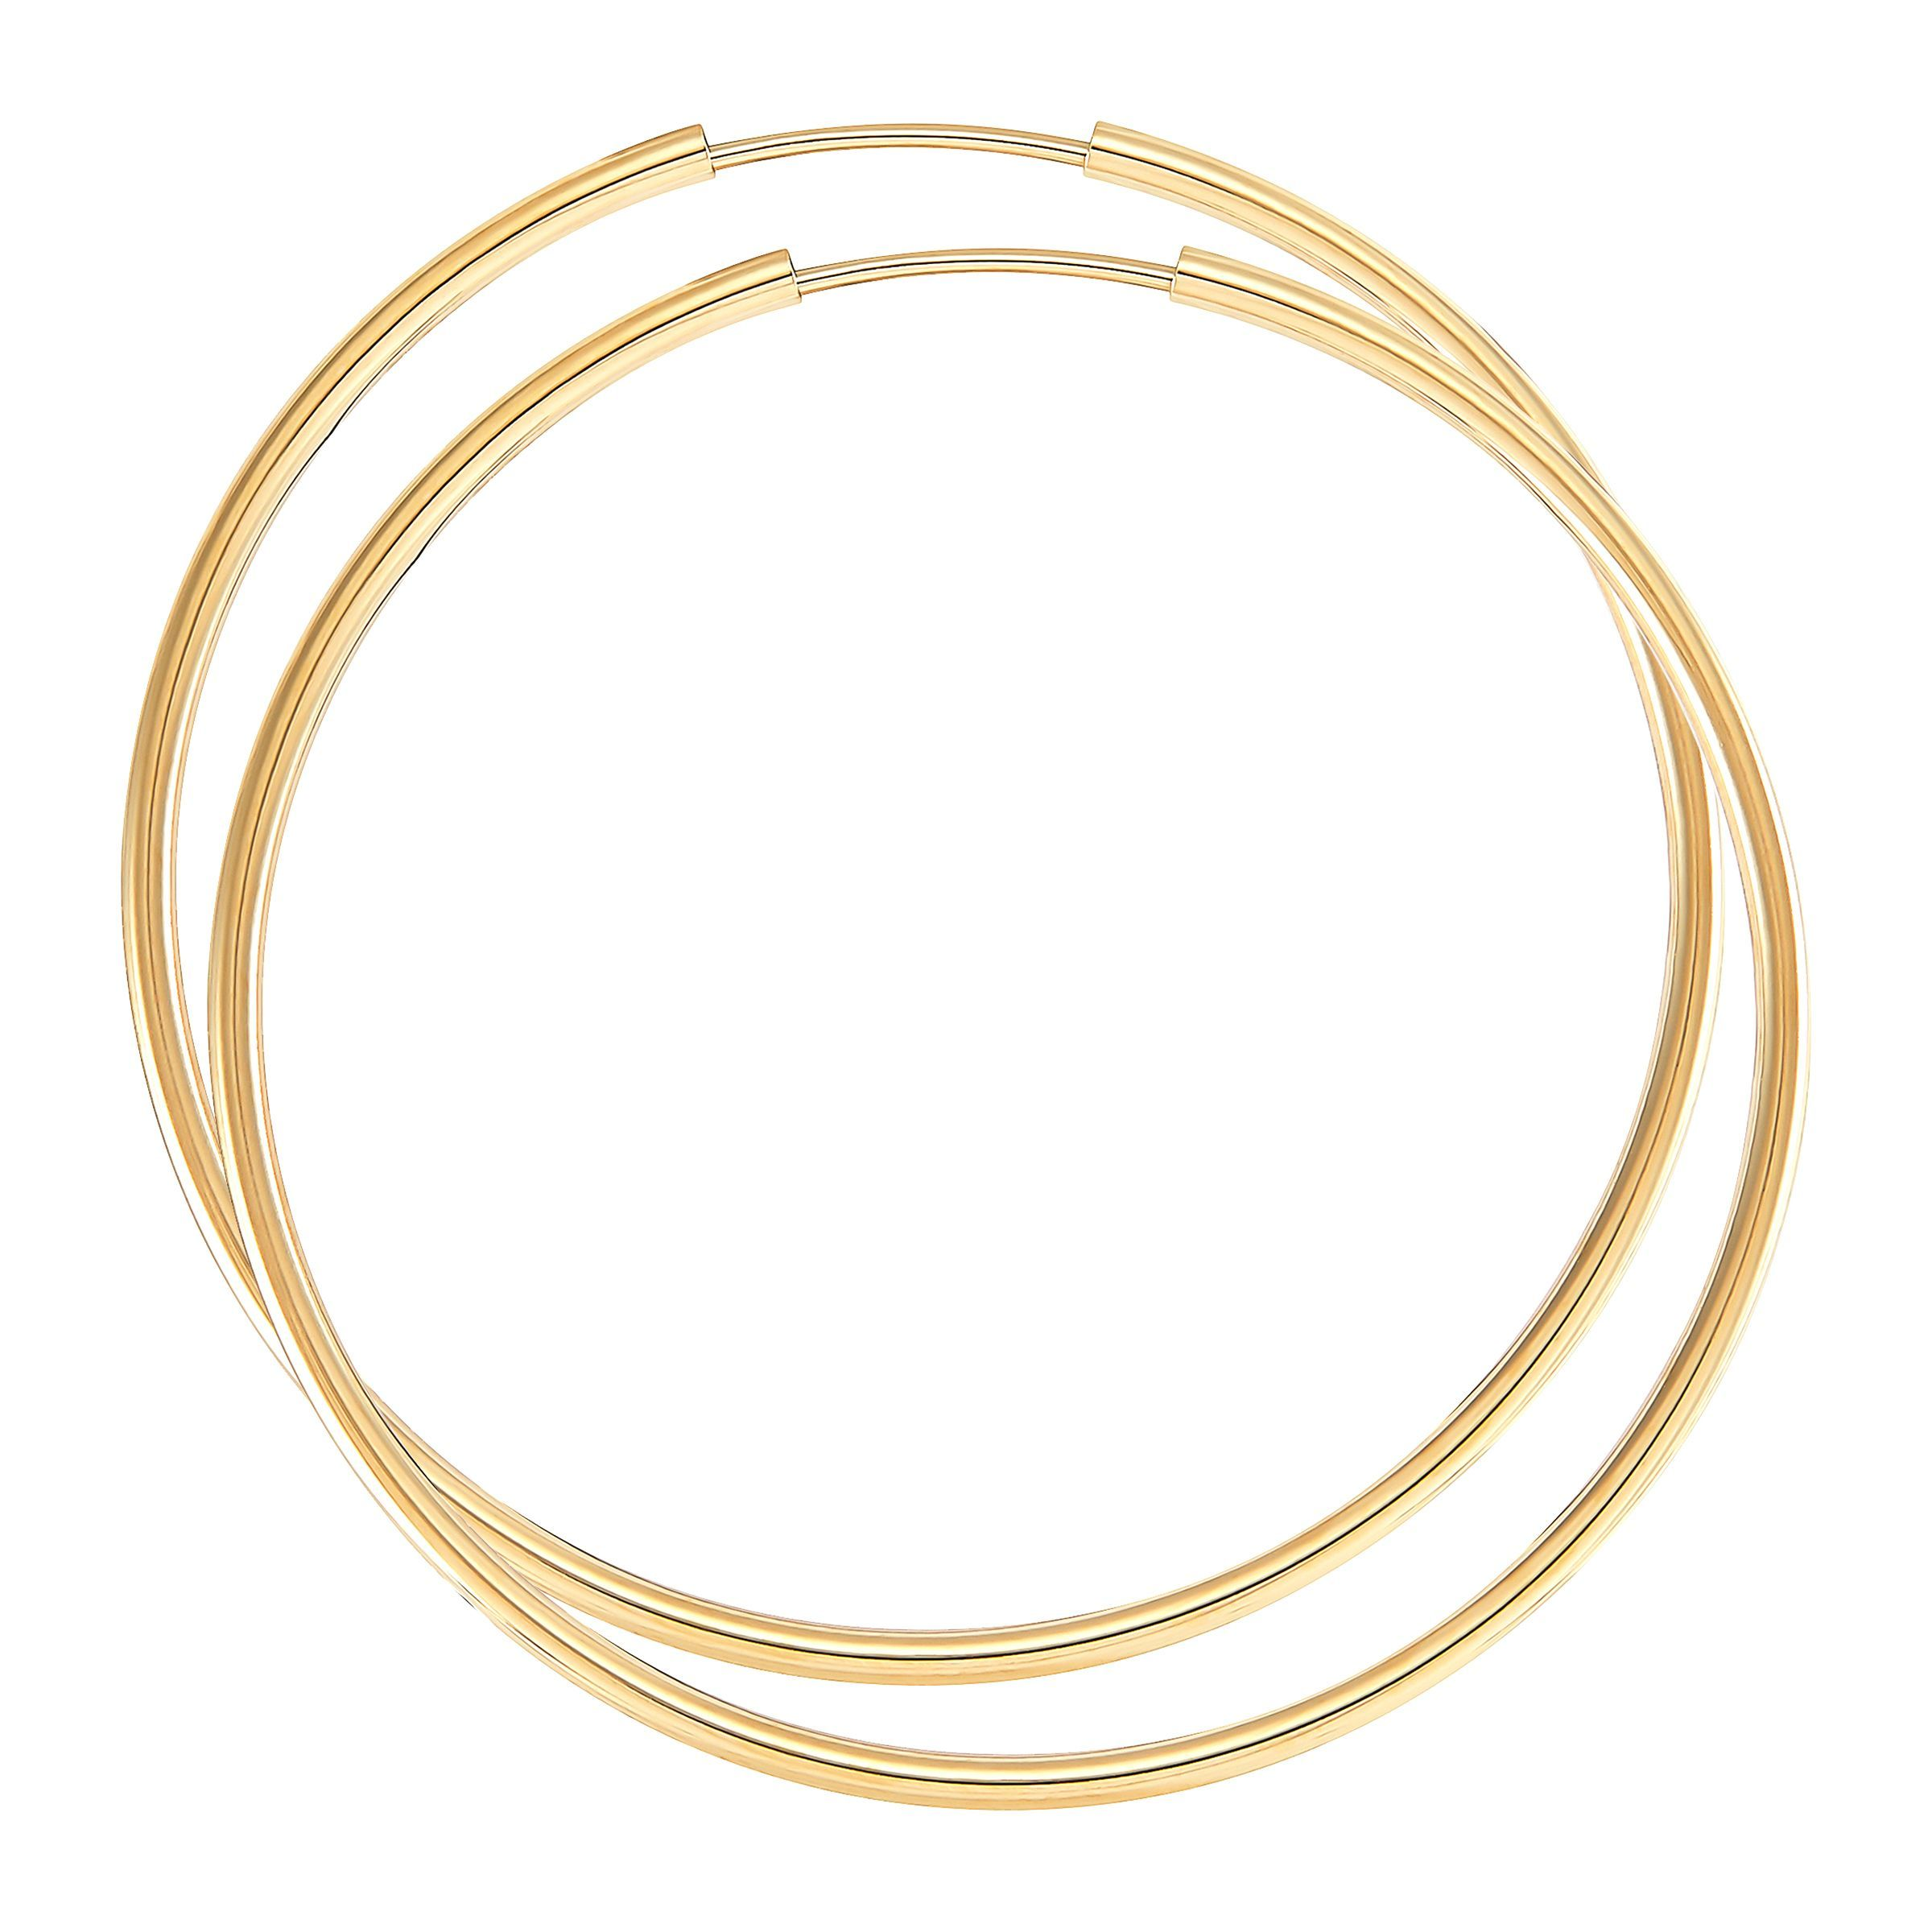 Solid 14K White Gold Textured Endless Hoop Earrings 1.5mm Thickness